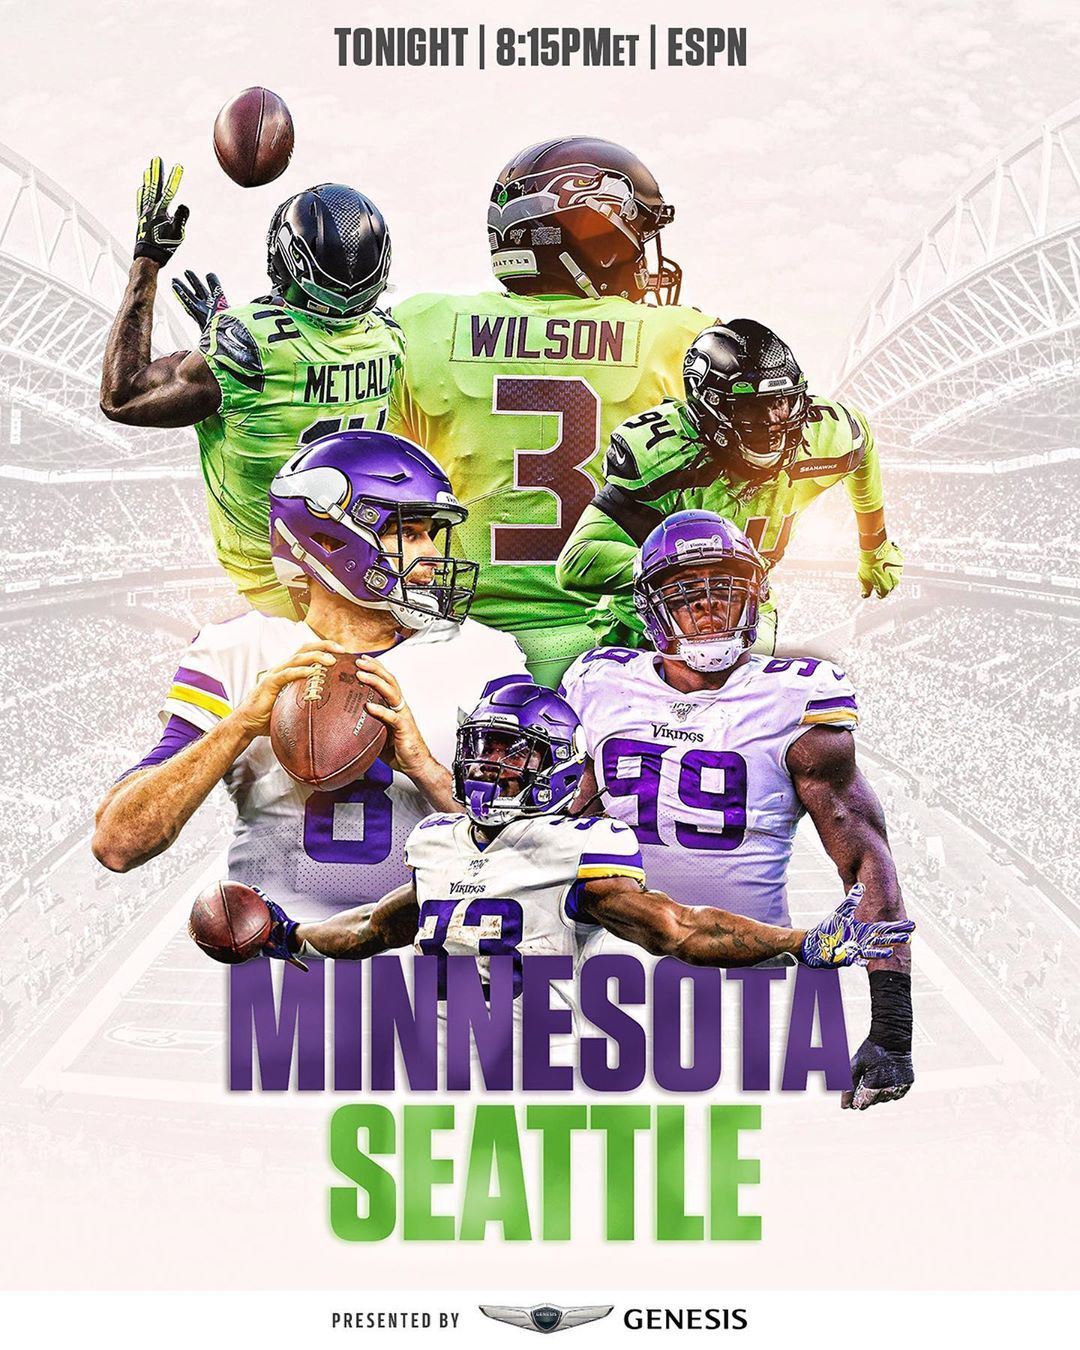 Nfl On Instagram Vikings Seahawks The 12 S And Big Playoff Implications Your Monday Just Got A Whole Lot Better Minvsse With Images Nfl Vikings